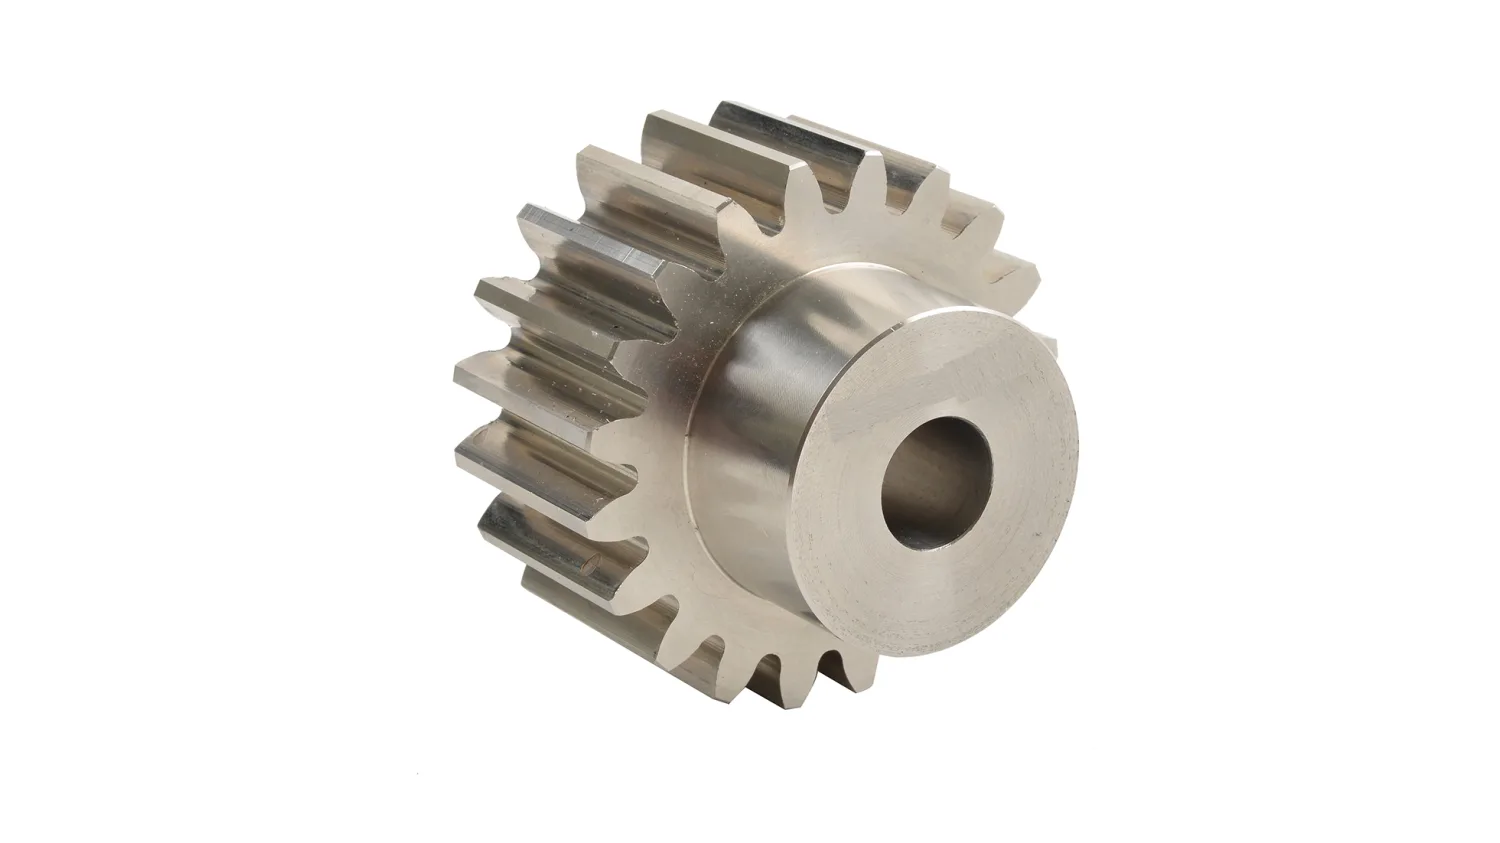 2-Mod-x-44-Tooth-Metric-Spur-Gear-in-Steel